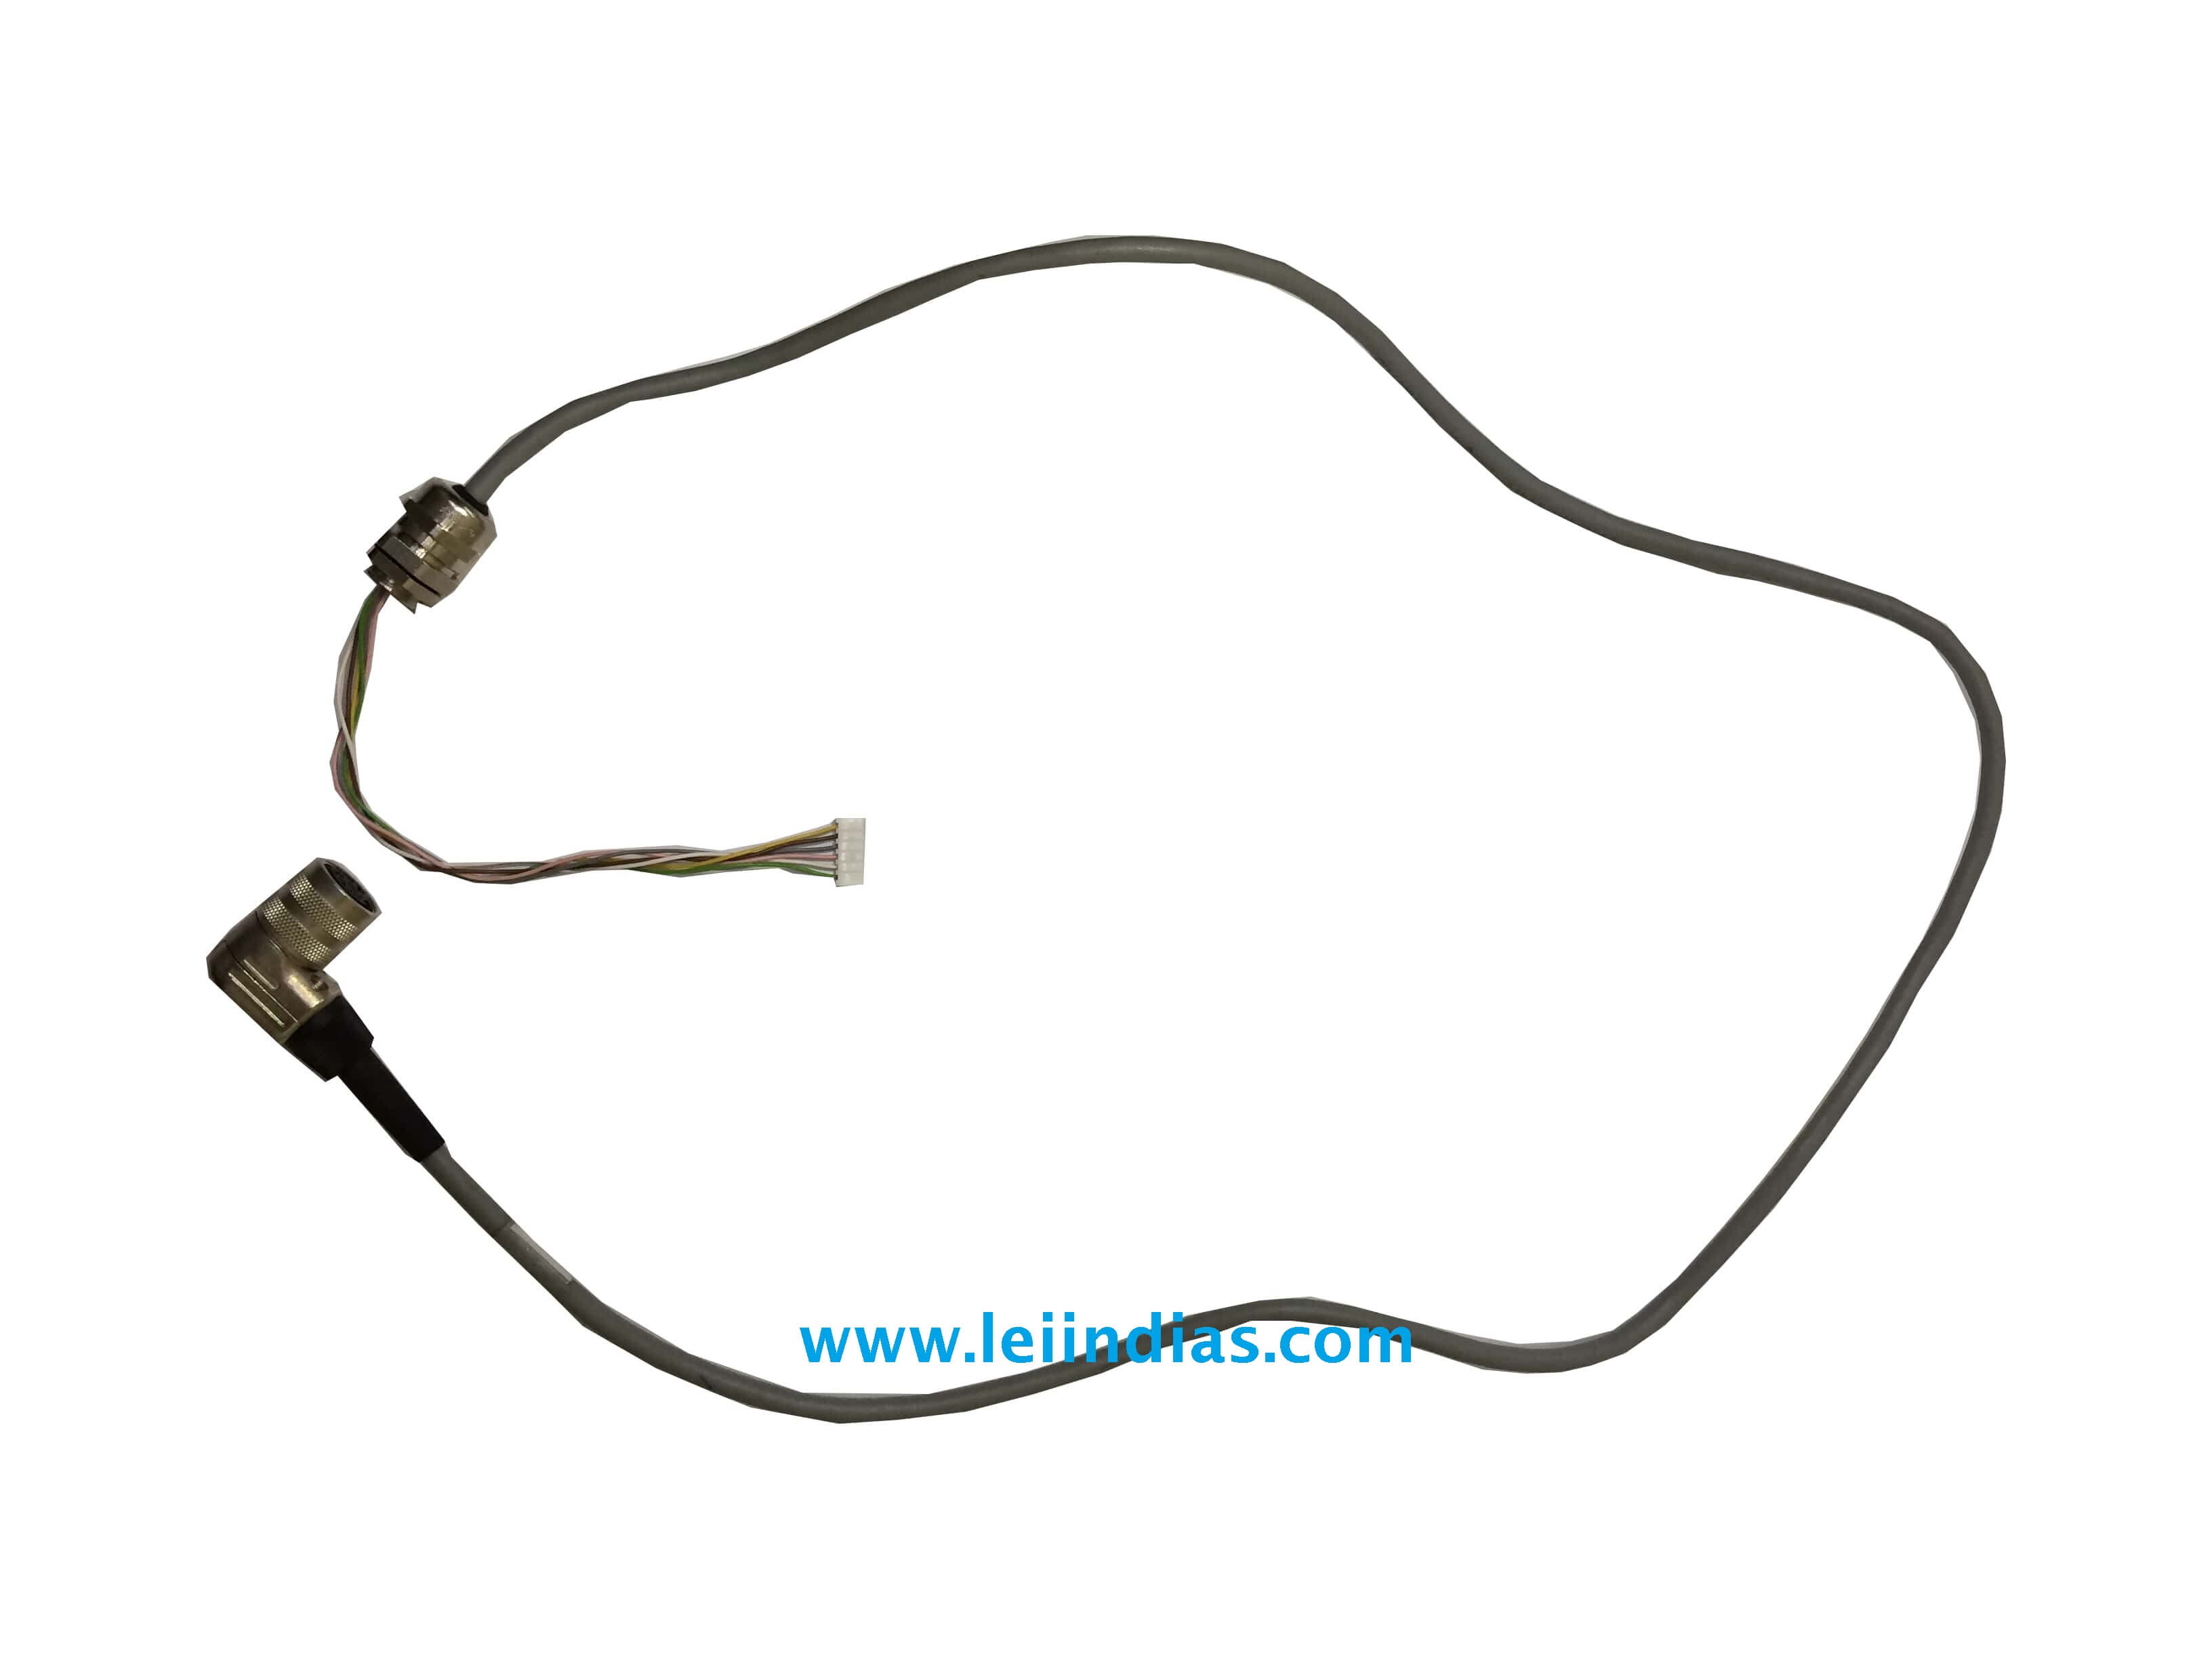 wiring harness in pune